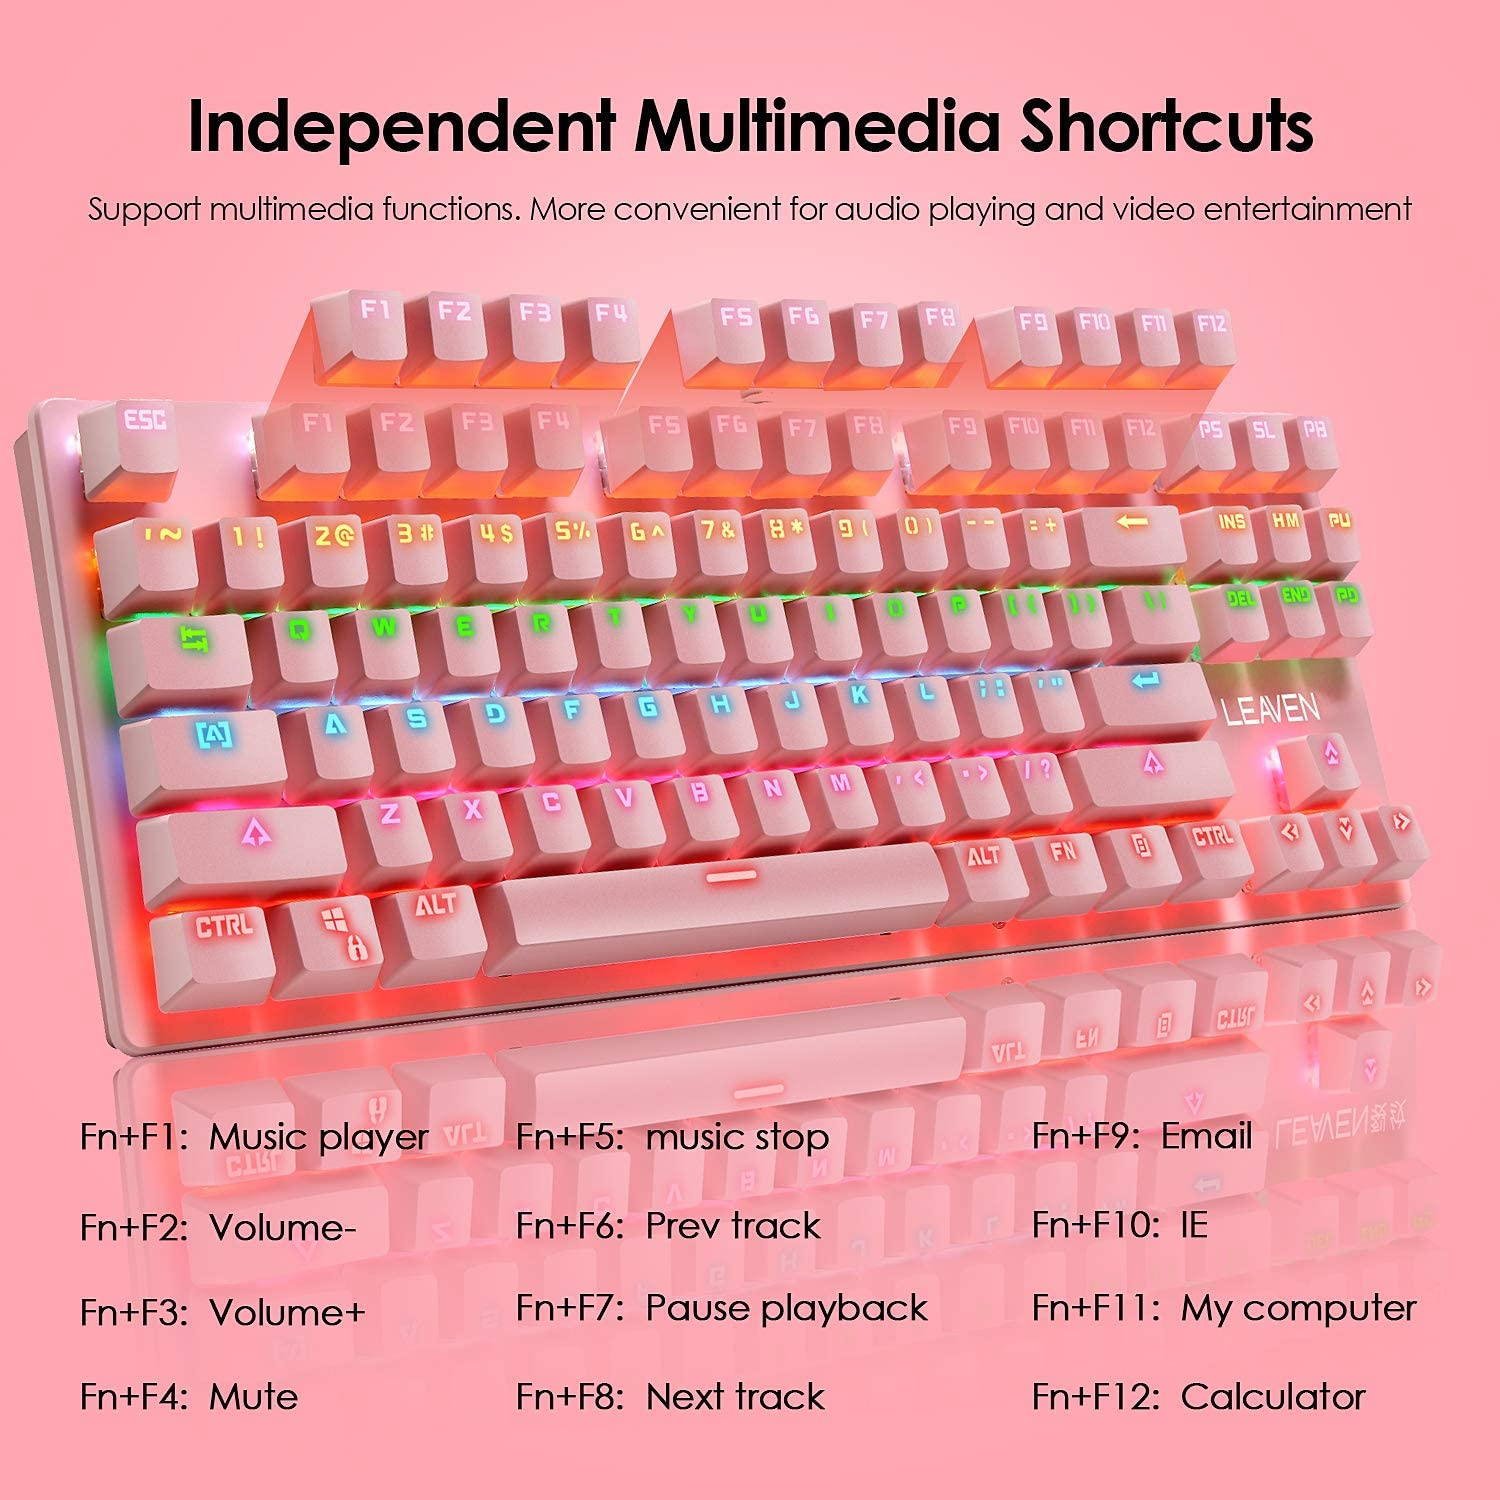 Blue Switch Wired Pink Keyboard 87 Keys Full Anti-ghosting Mice Pad Set RGB Backlit Mechanical Gaming Keyboard Programmable 6400DPI Ultra-Light Honeycomb Coal Wired Game Mouse for Game or work